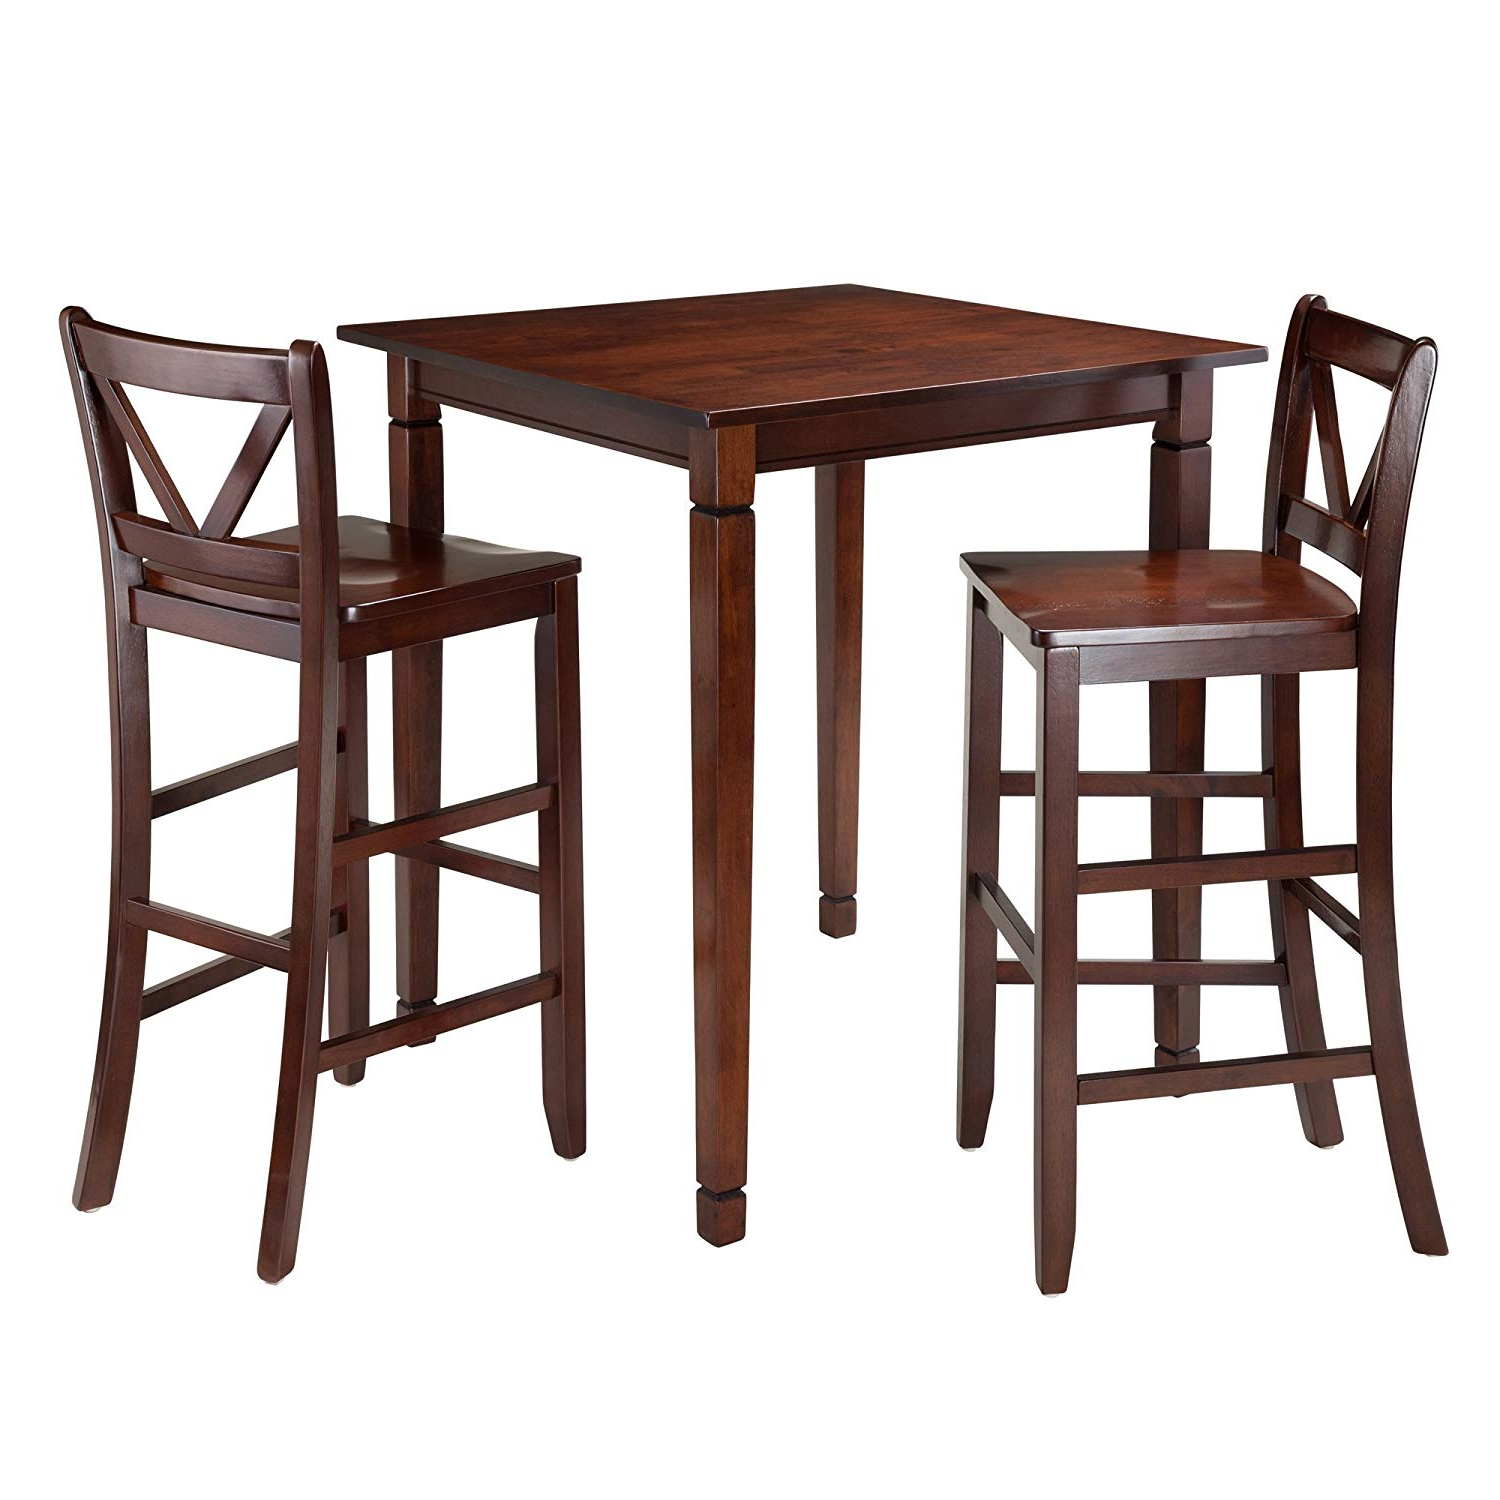 Winsome 3 Piece Counter Height Dining Sets With Regard To Trendy Amazon – Winsome 3 Piece Kingsgate Dining Table With 2 Bar V (View 21 of 25)